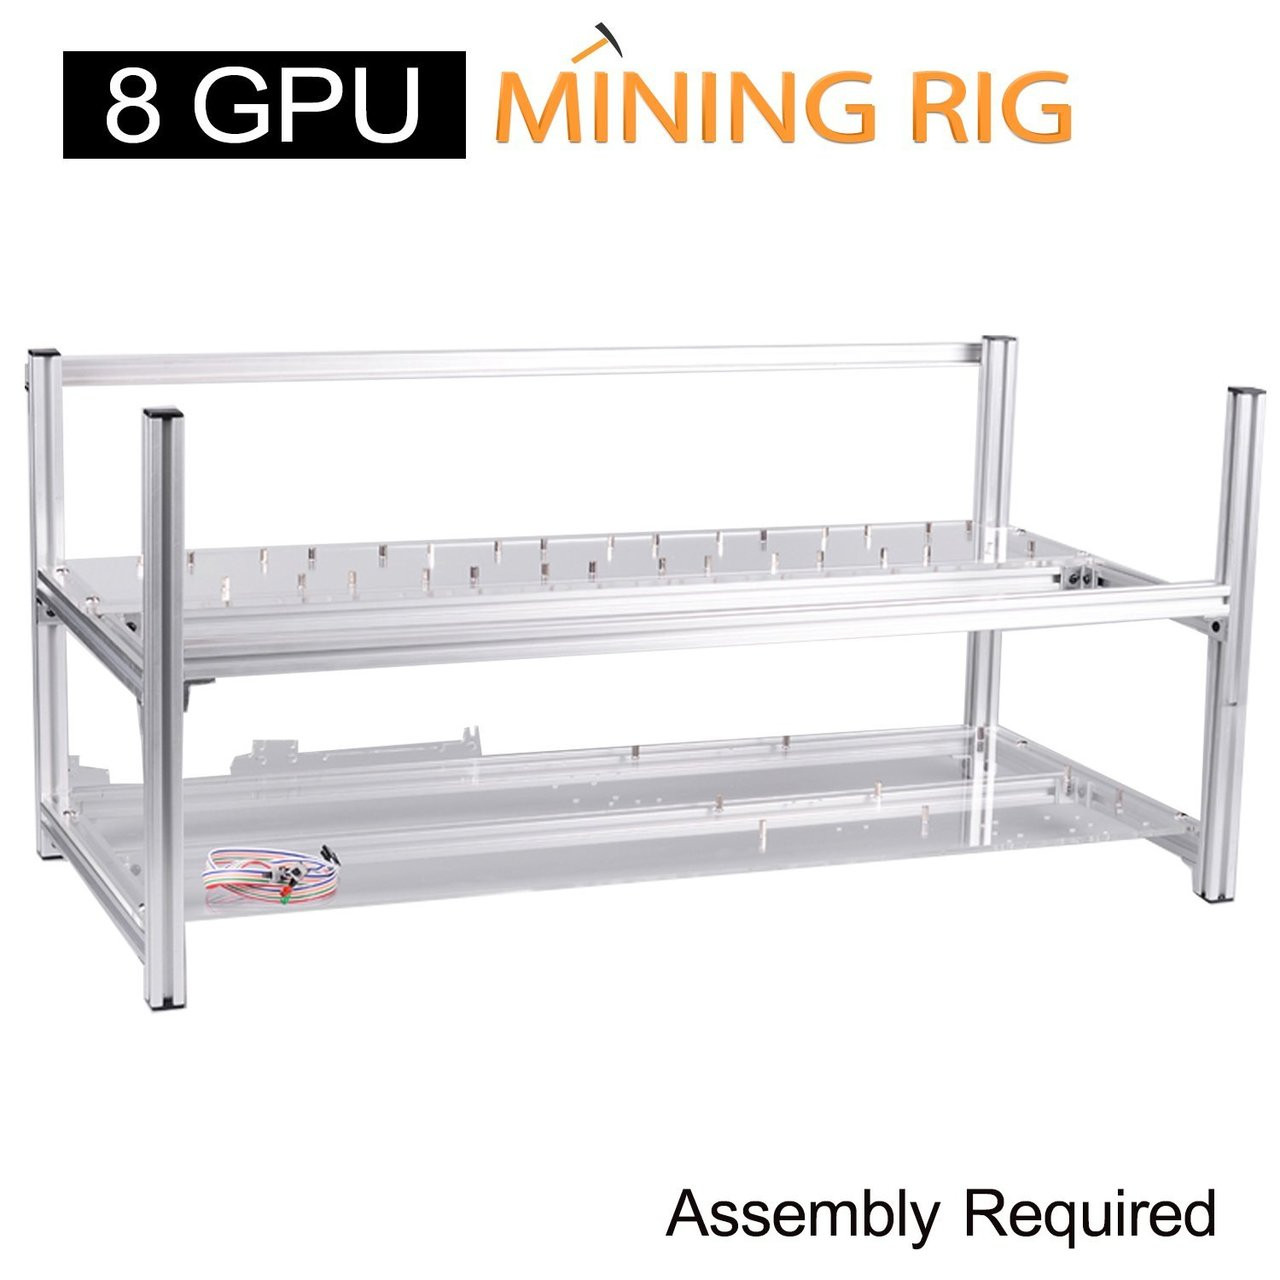 AAAwave 'THE DREDGE' 8 GPU Mining Rig Frame - Stackable Open Frame